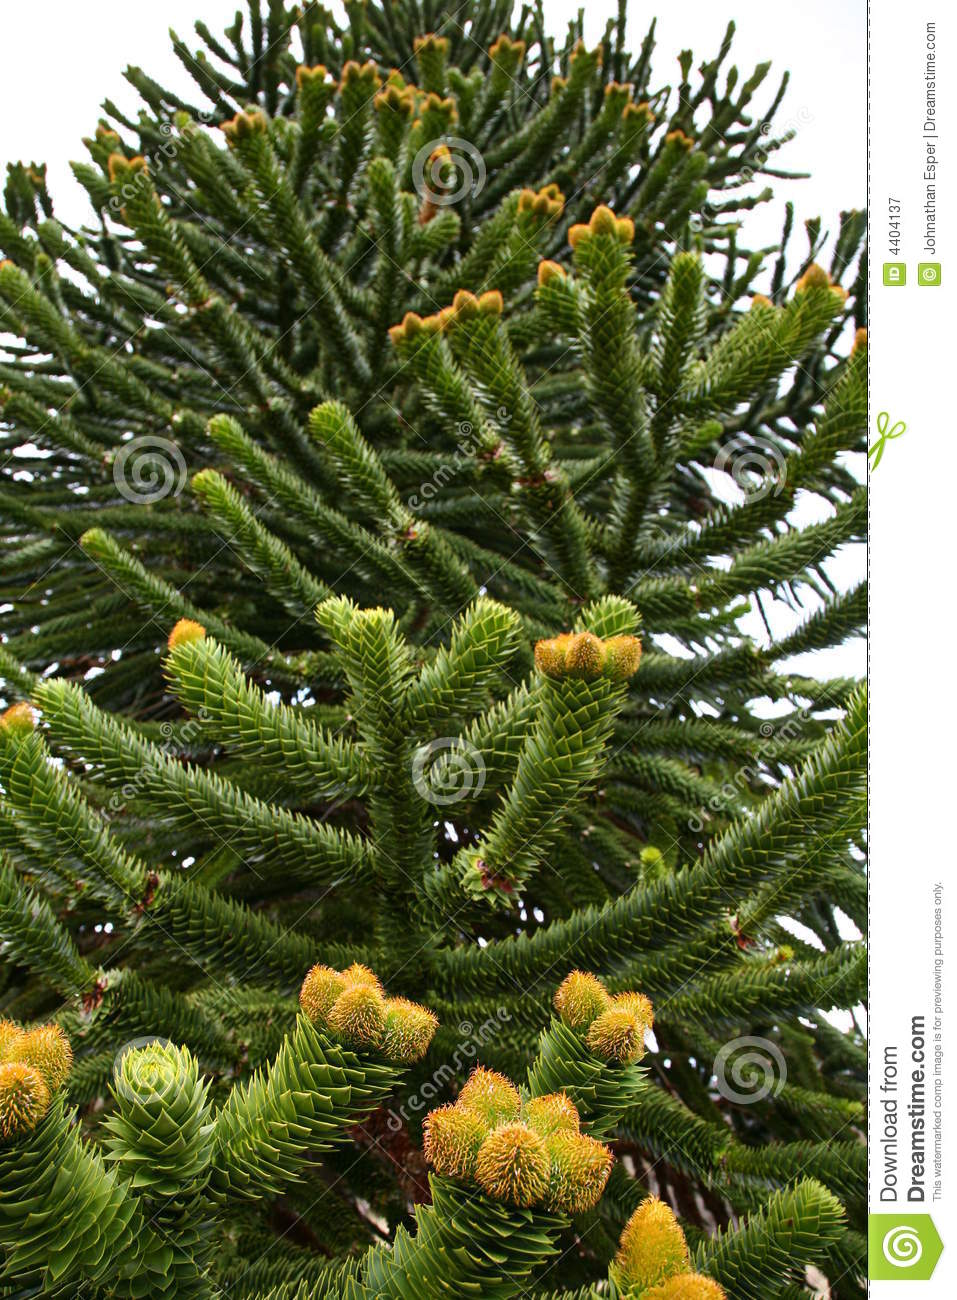 ... Free Stock Photography: Male cones of the Araucaria araucana tree